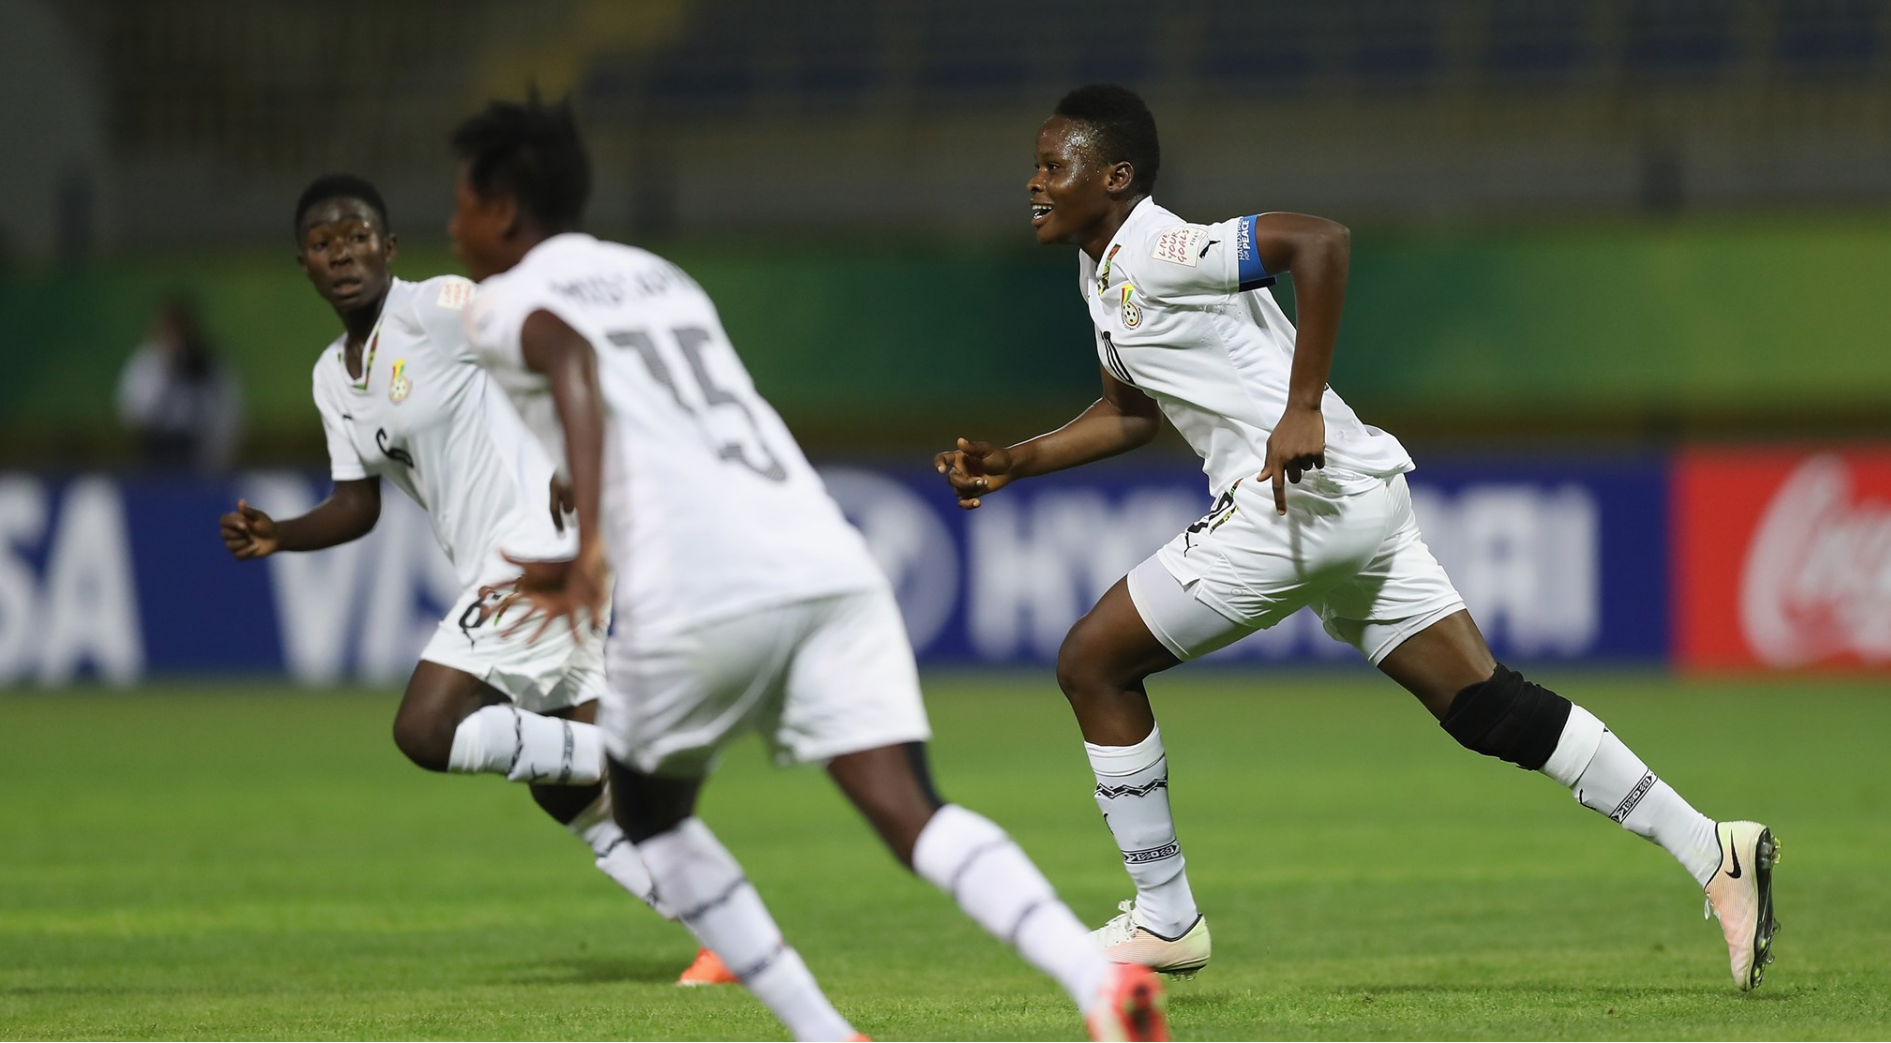 FIFA U17 Women's World Cup: Owusu Ansah scores a worldy to send Black Maidens to quarters